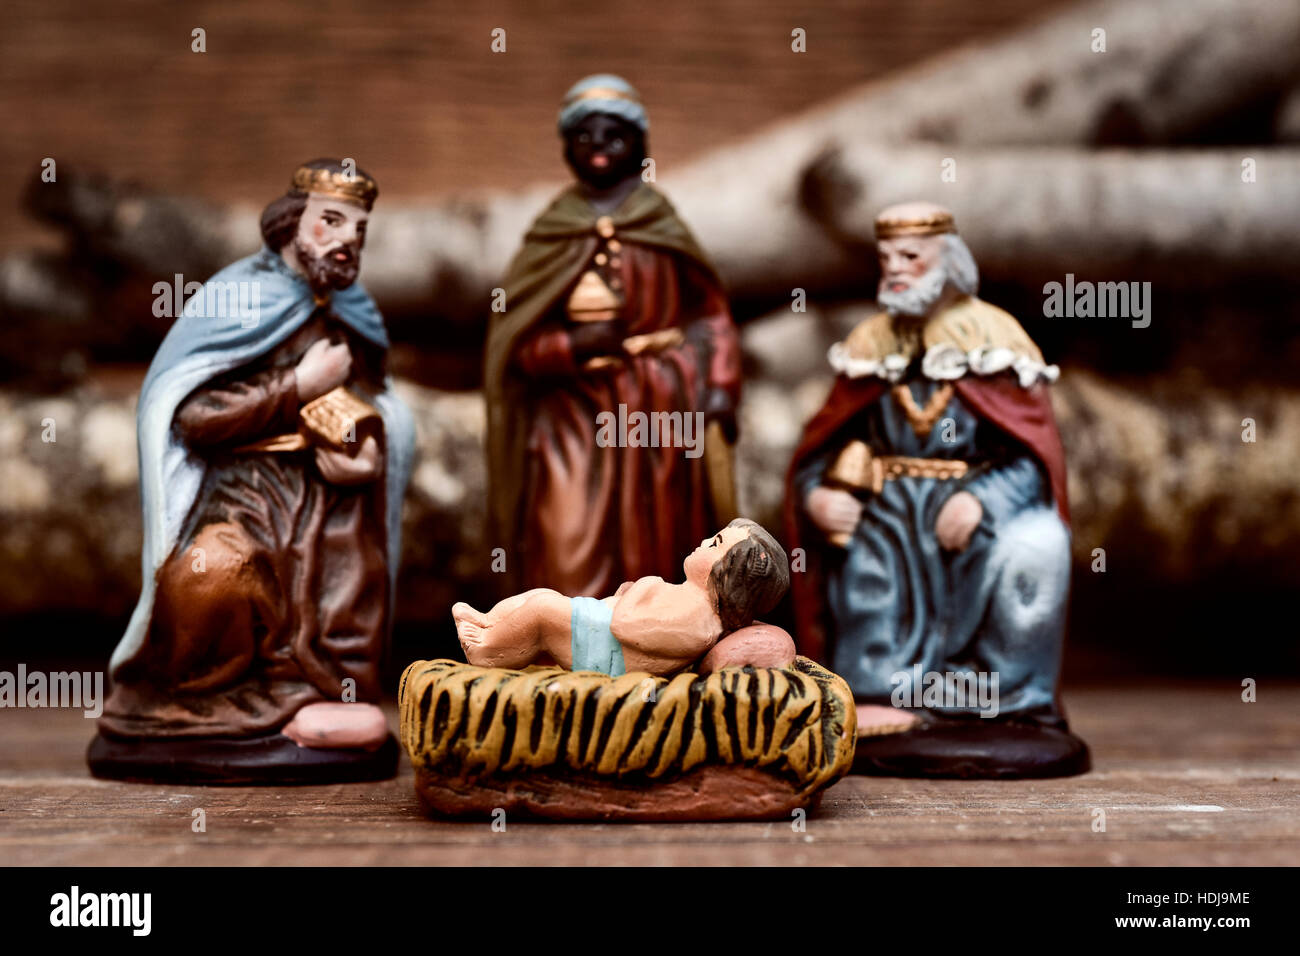 closeup of the three kings carrying their gifts adoring the Child Jesus on a rustic scene - Stock Image